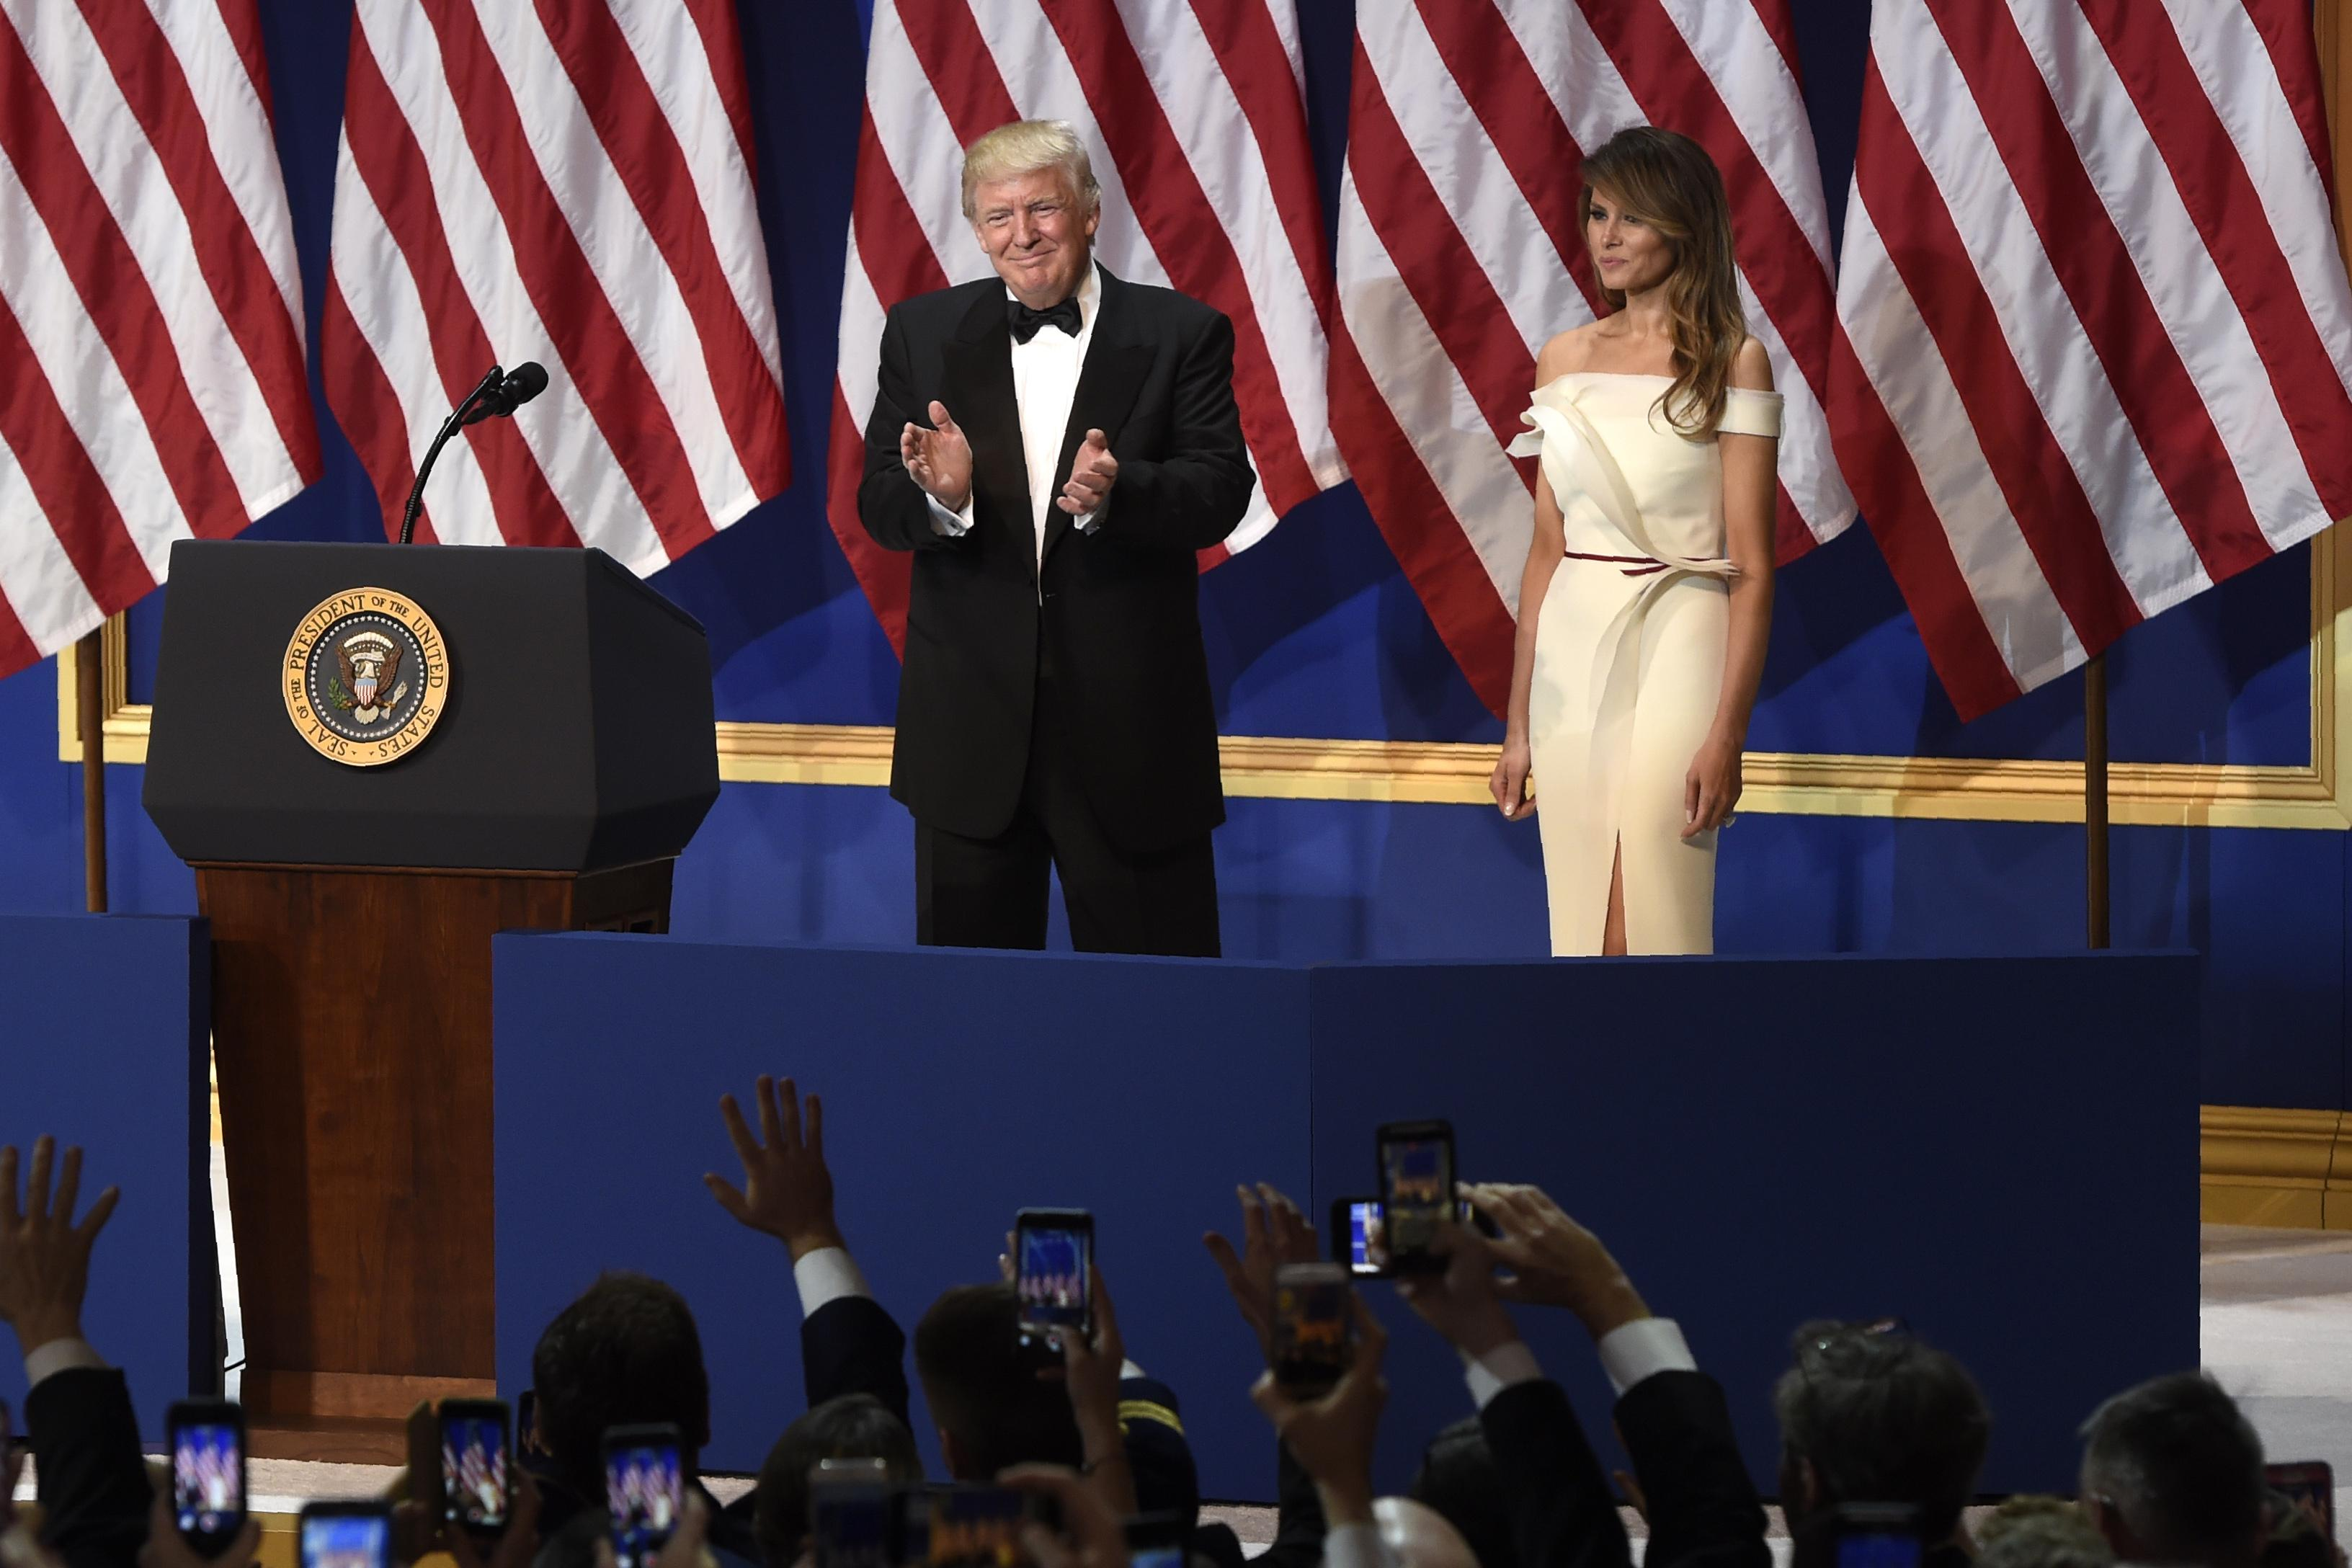 Prosecutors subpoena for documents from Trump inaugural committee